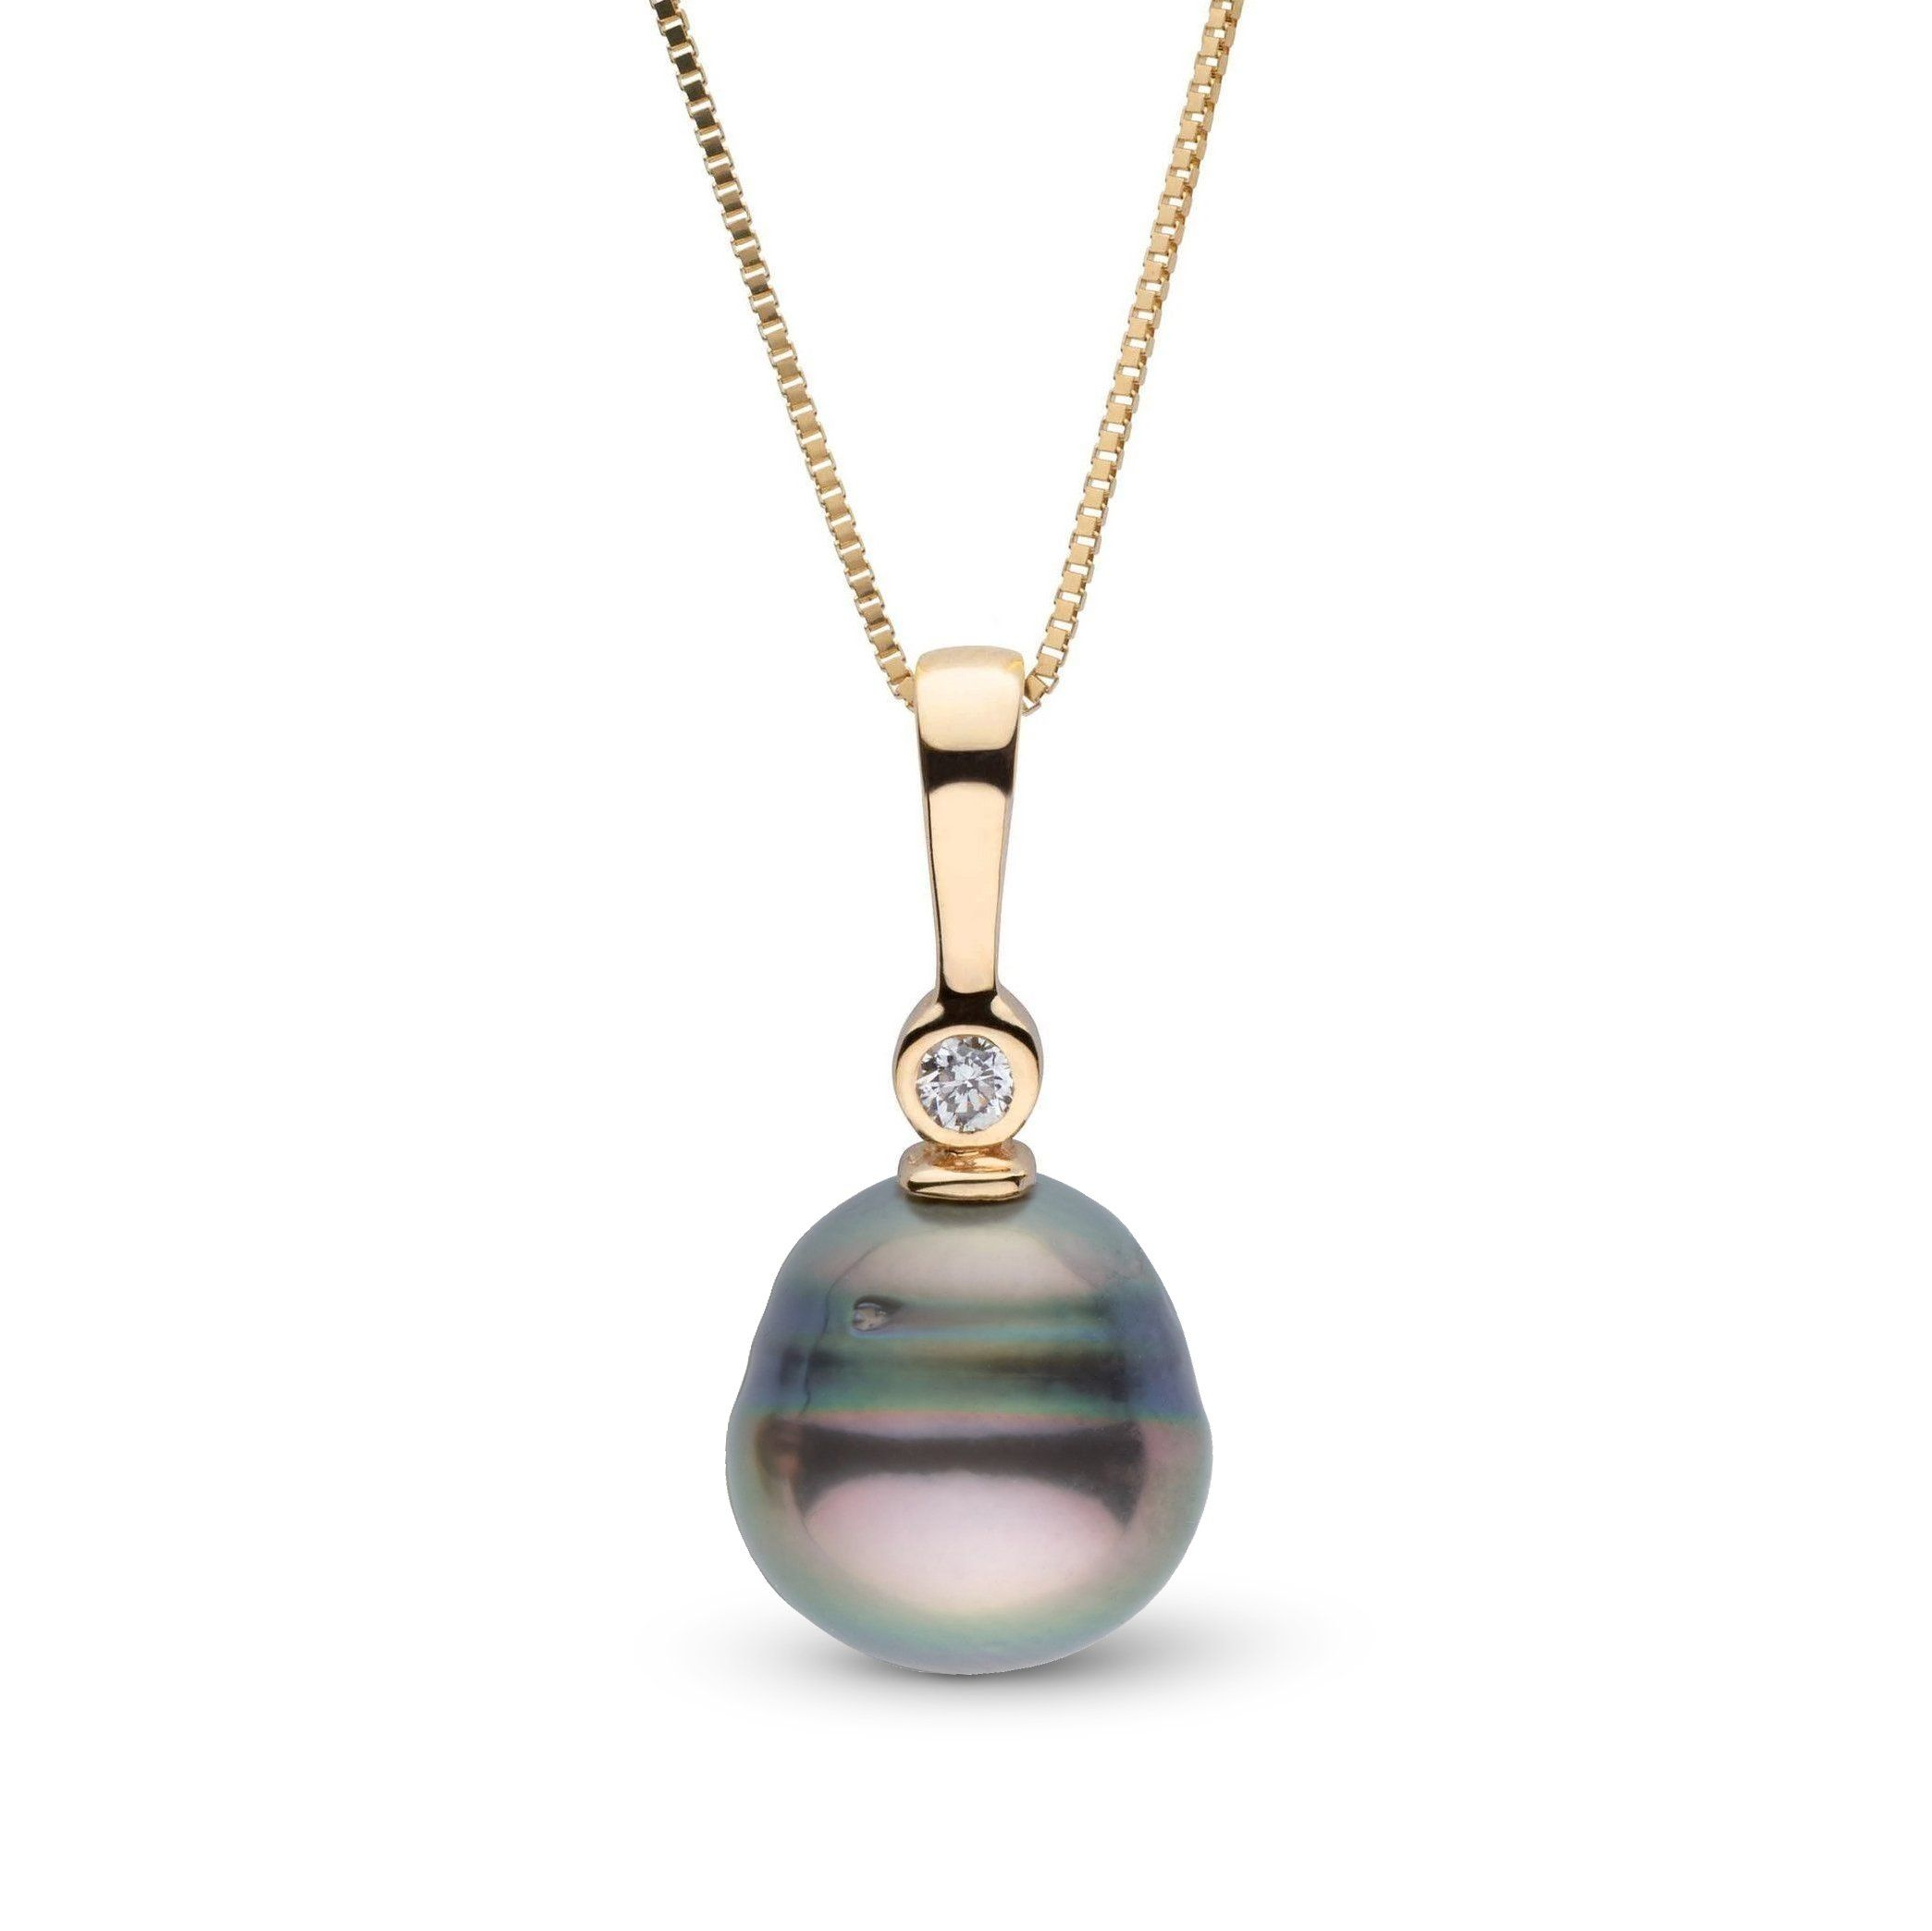 Aspire Collection 8.0-9.0 mm Baroque Tahitian Pearl & Diamond Pendant